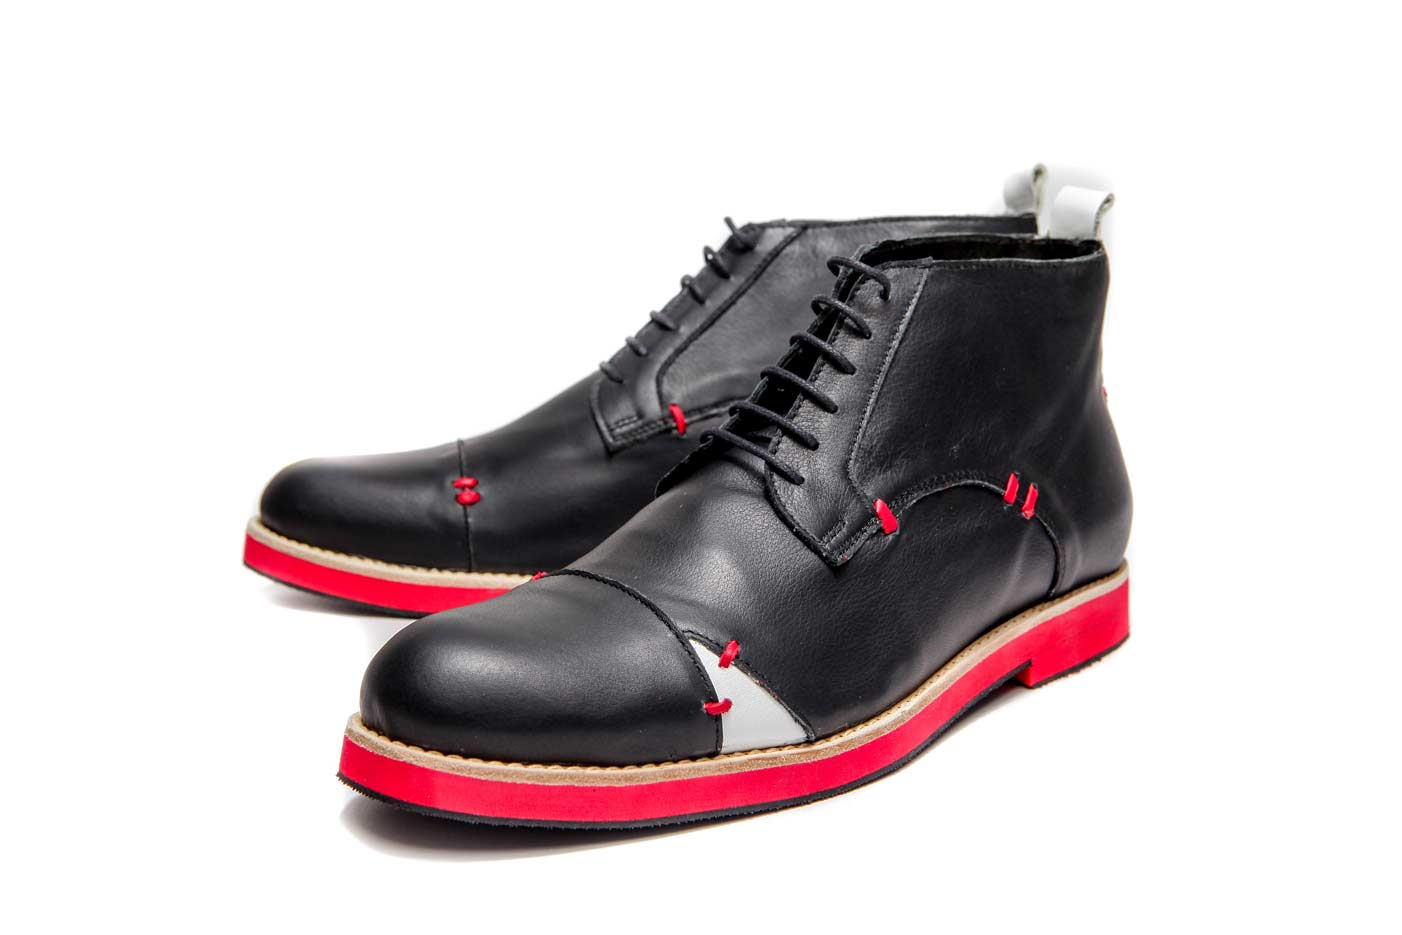 Mens shoes with red soles | Men's ankle